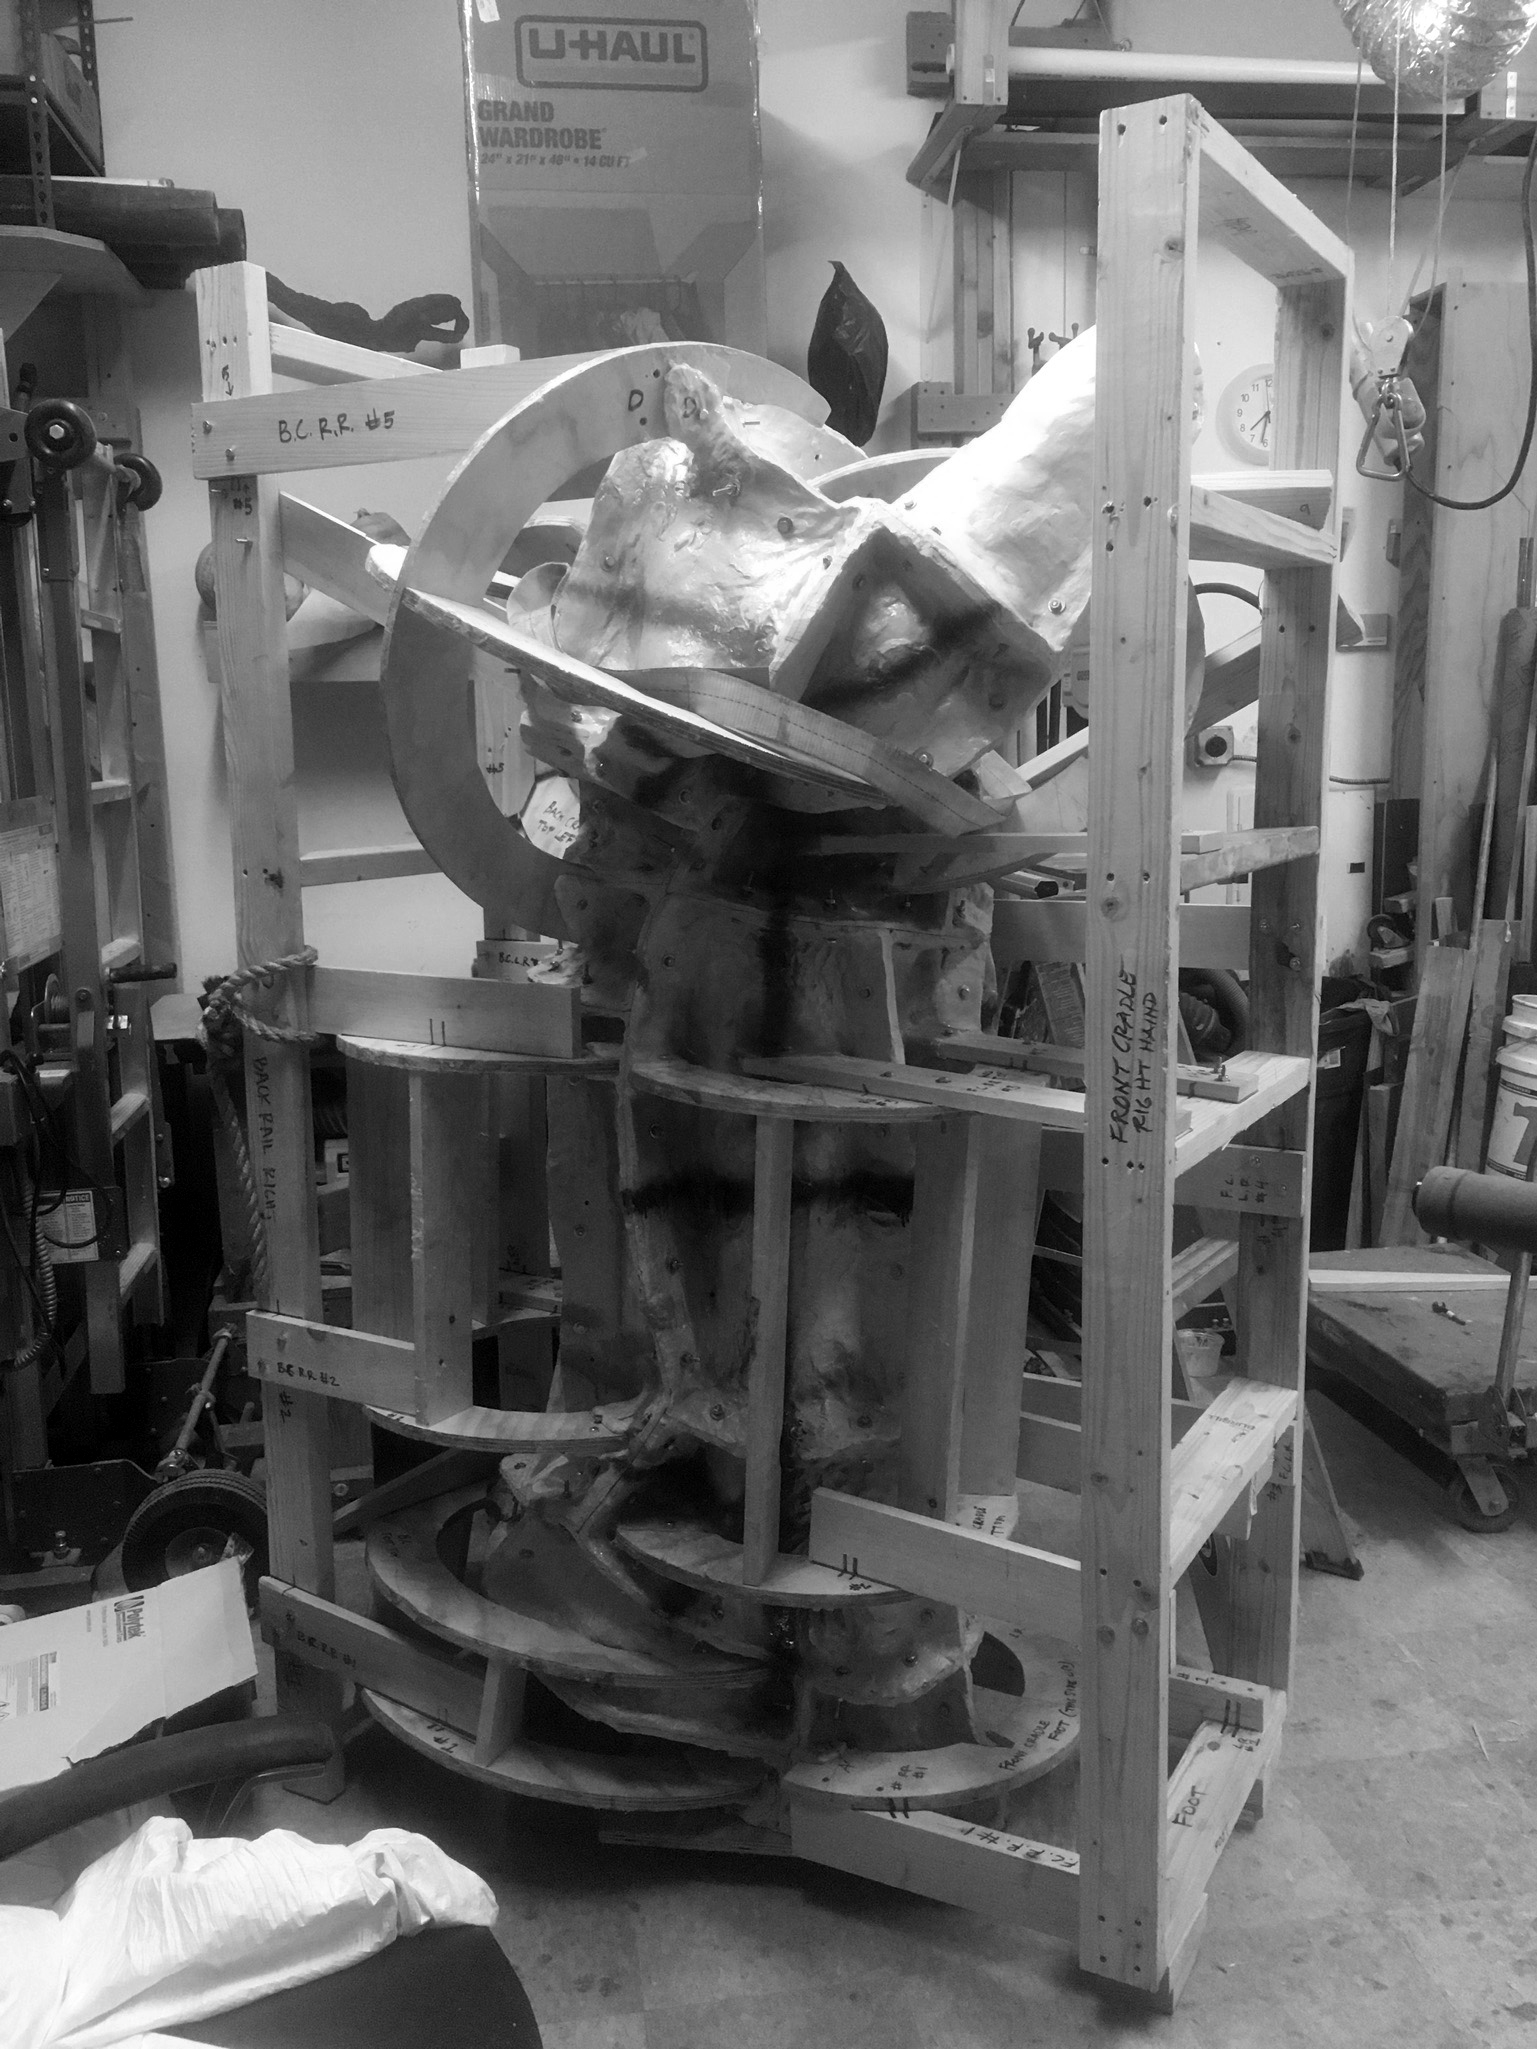 Mold and Cradle Assembled for Casting